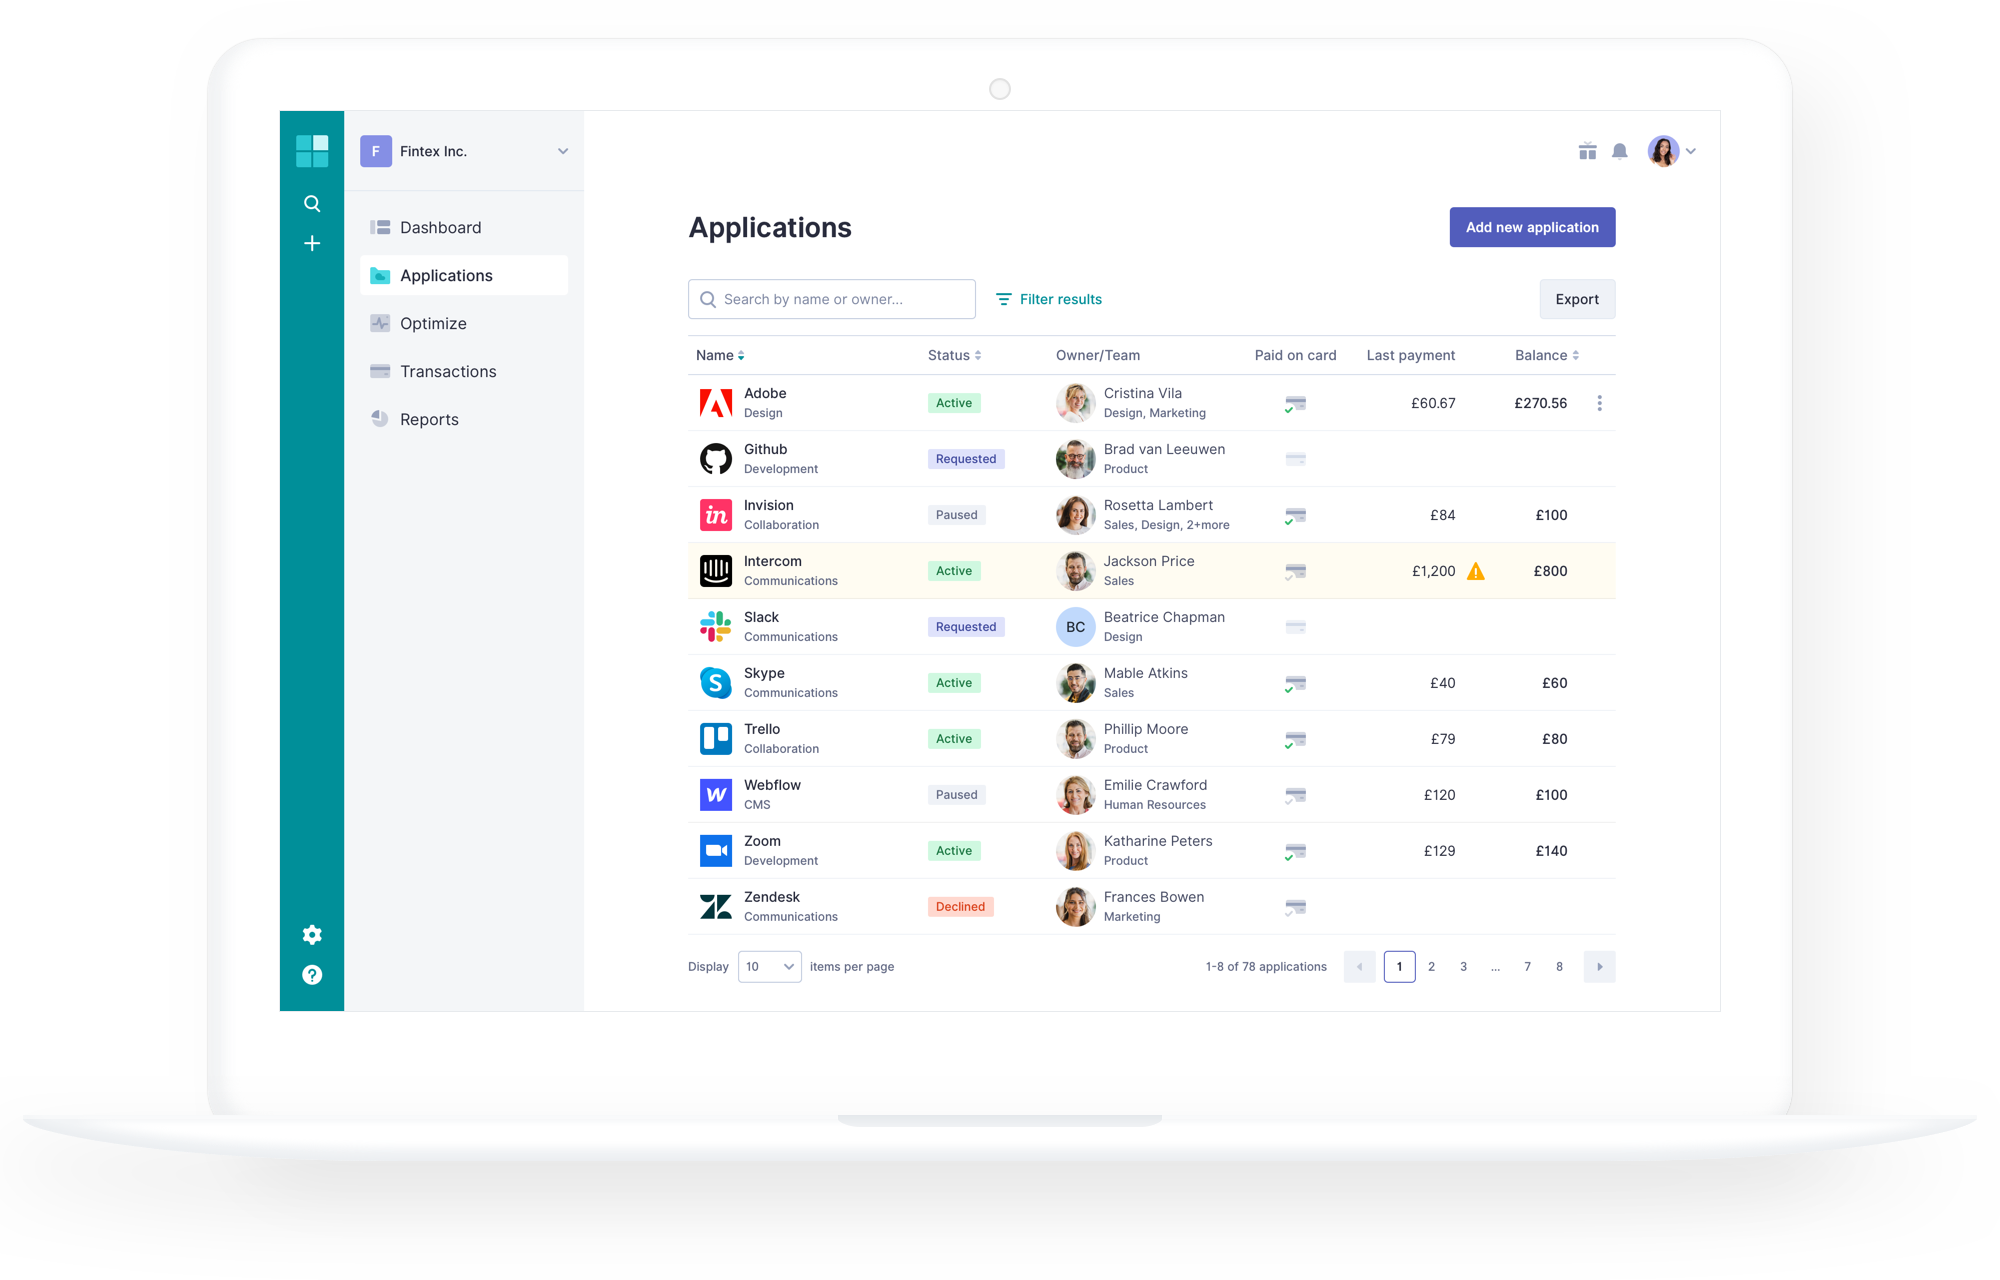 Manage Applications screenshot